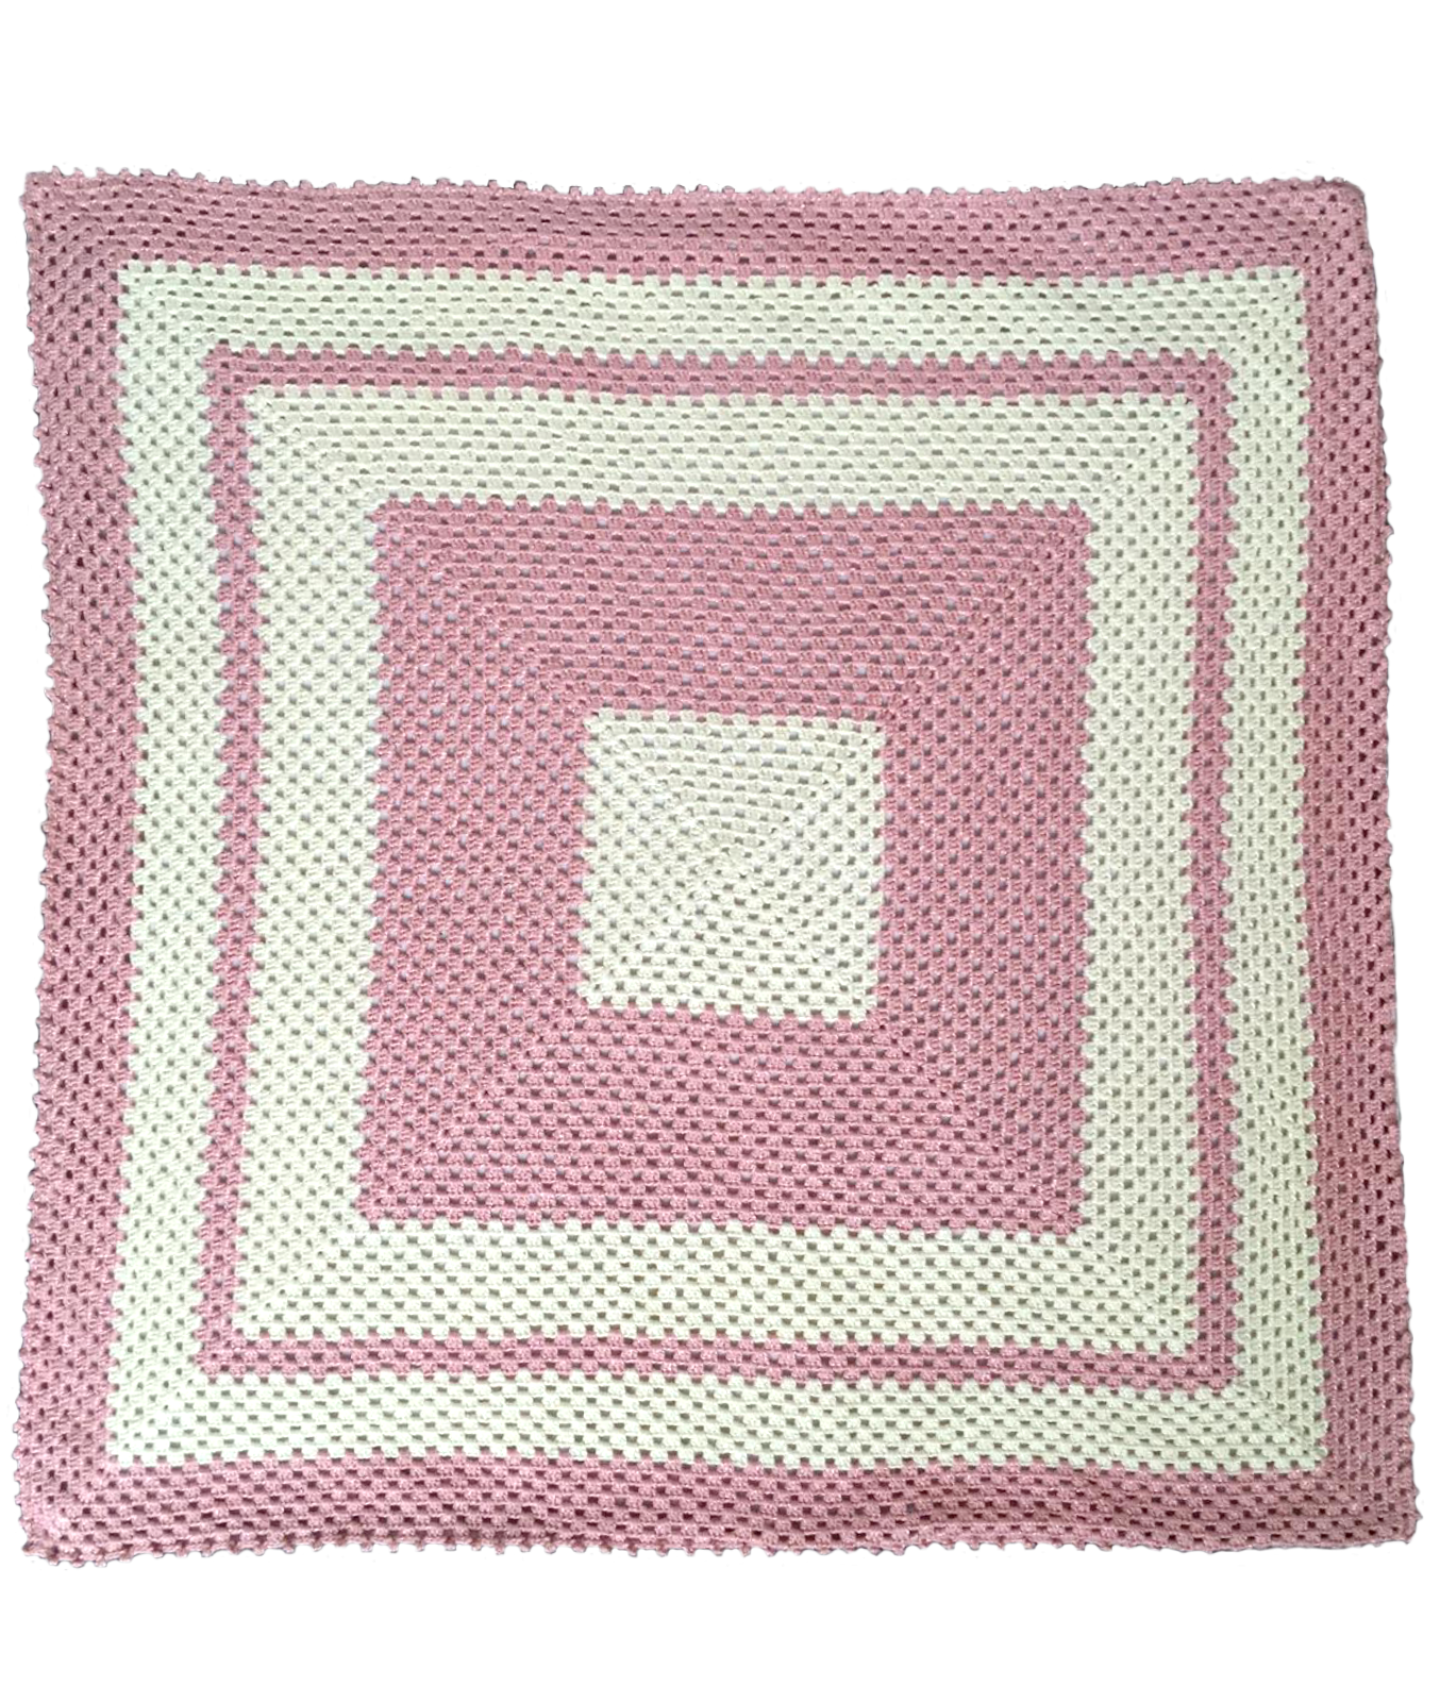 Another Beautiful Granny Square Crochet Blanket with Fabric Backing